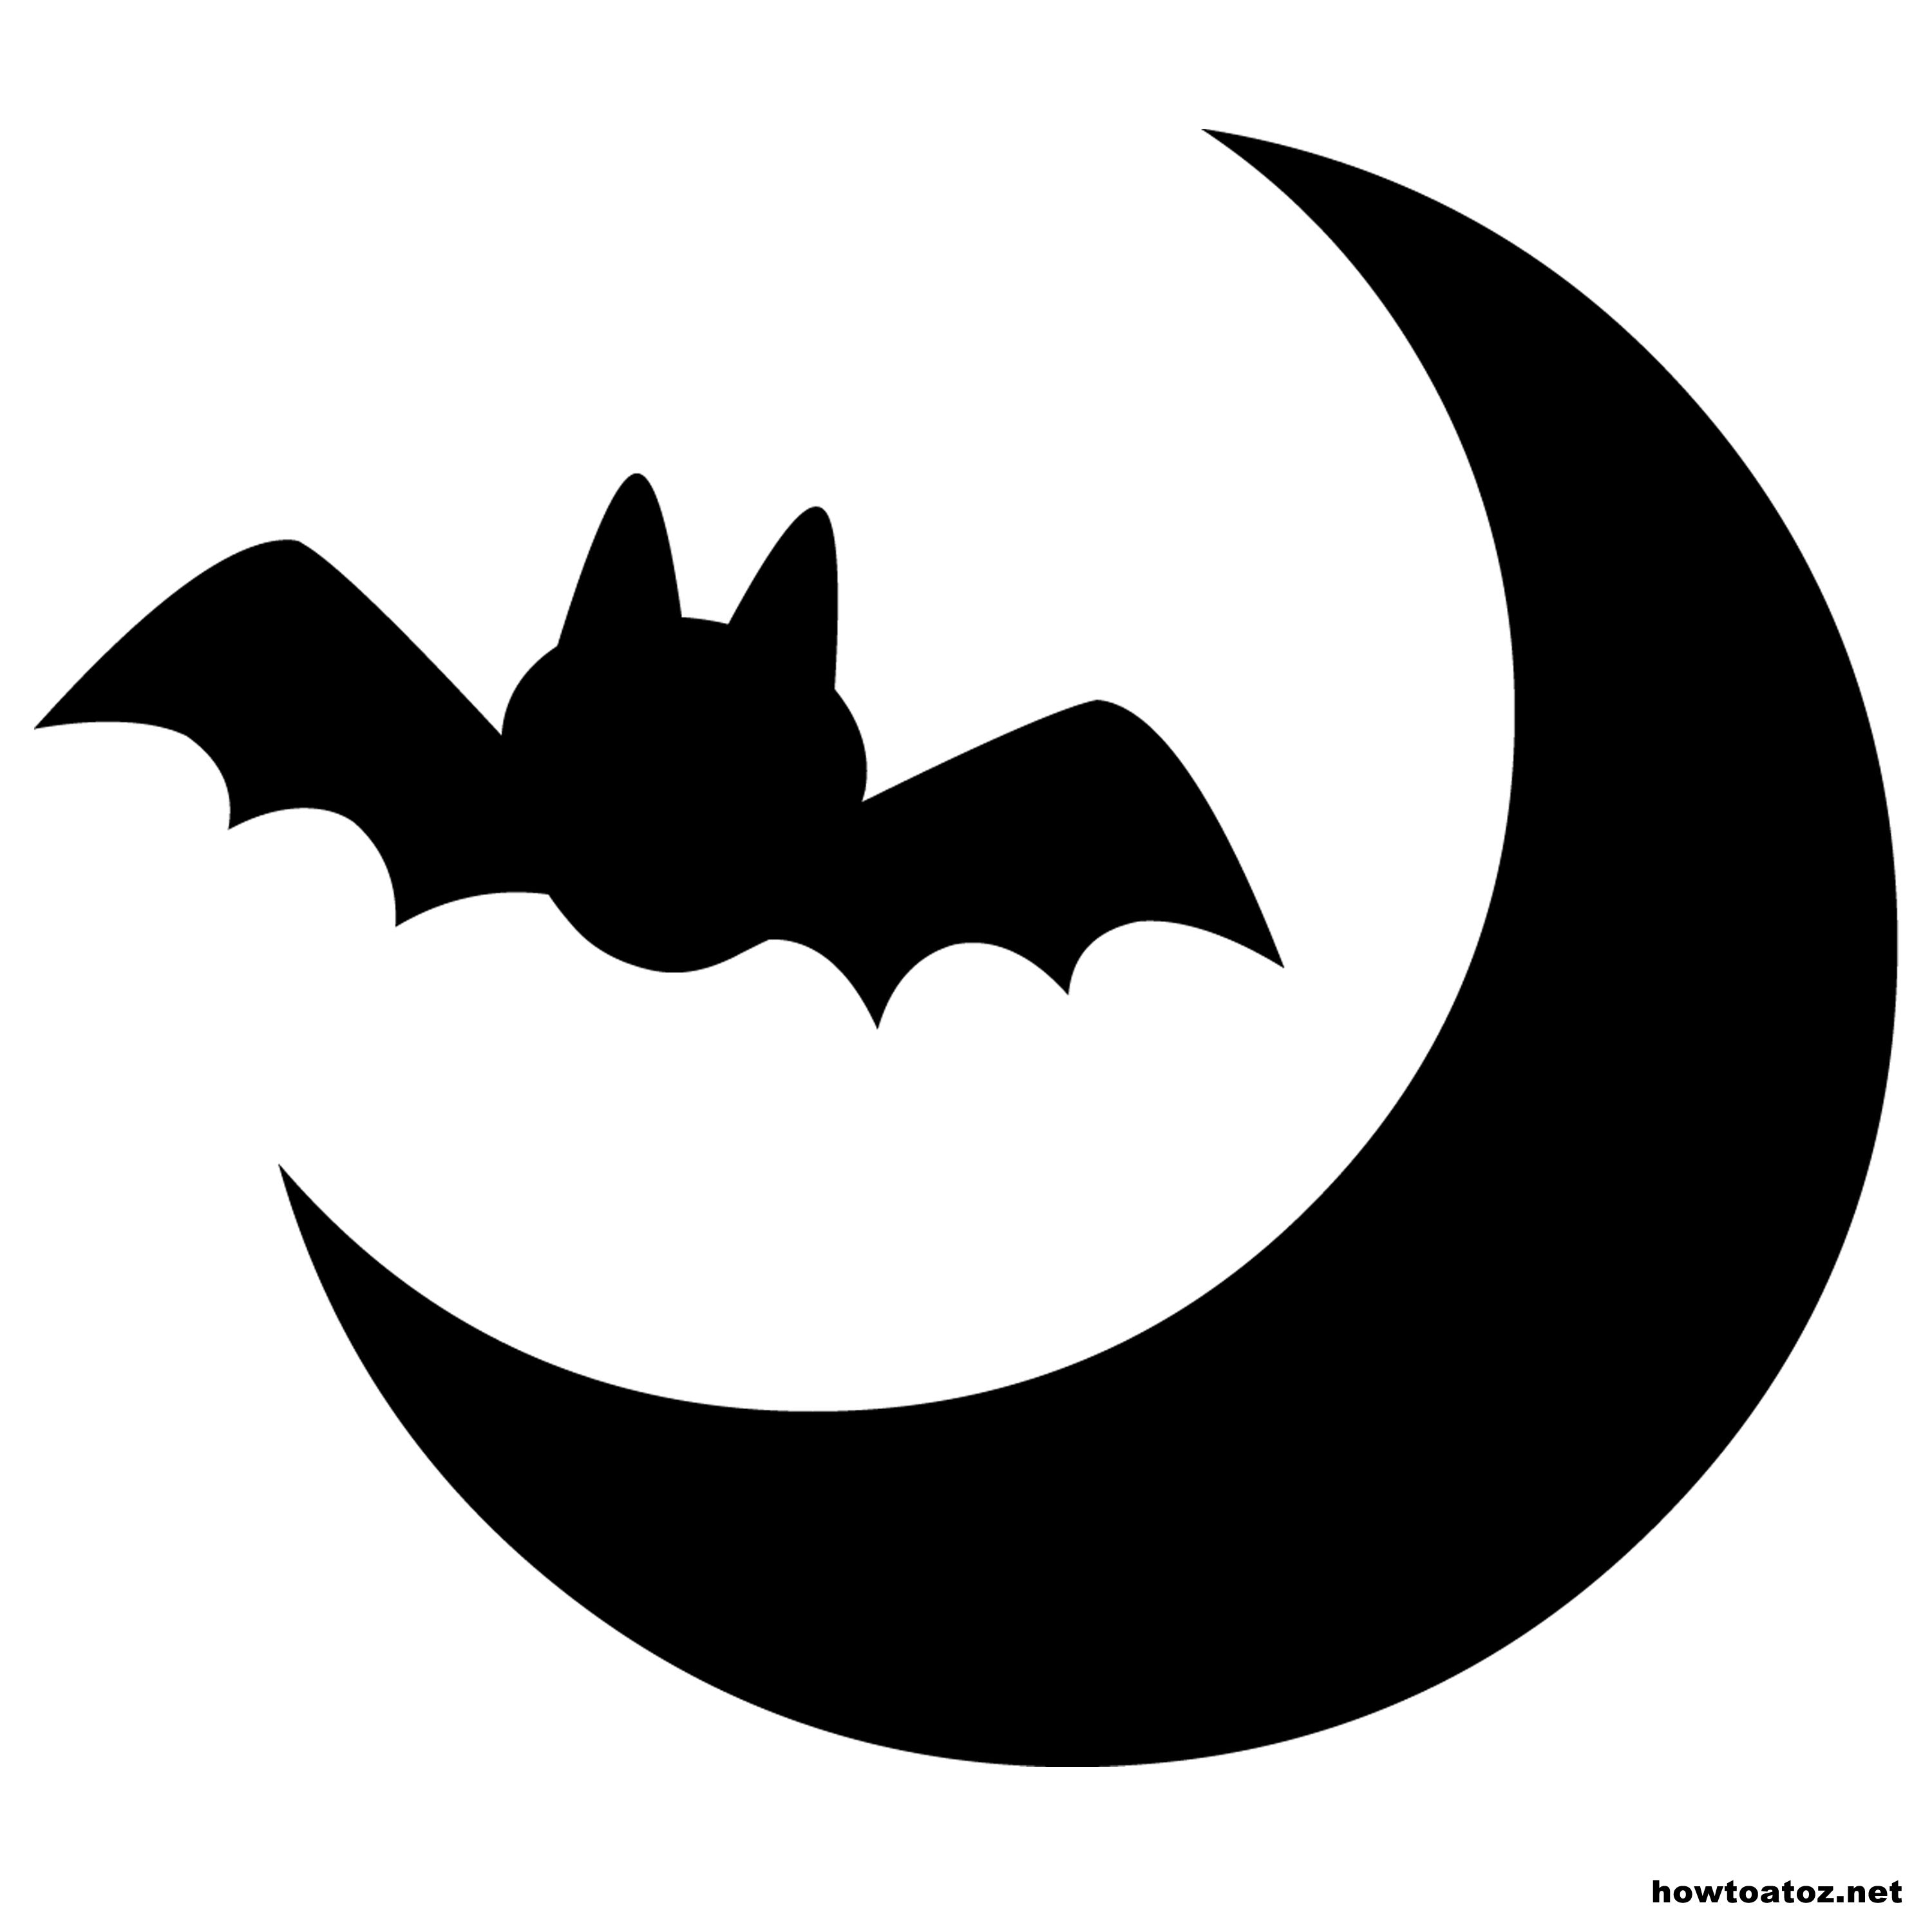 It's just a graphic of Printable Bats intended for free printable